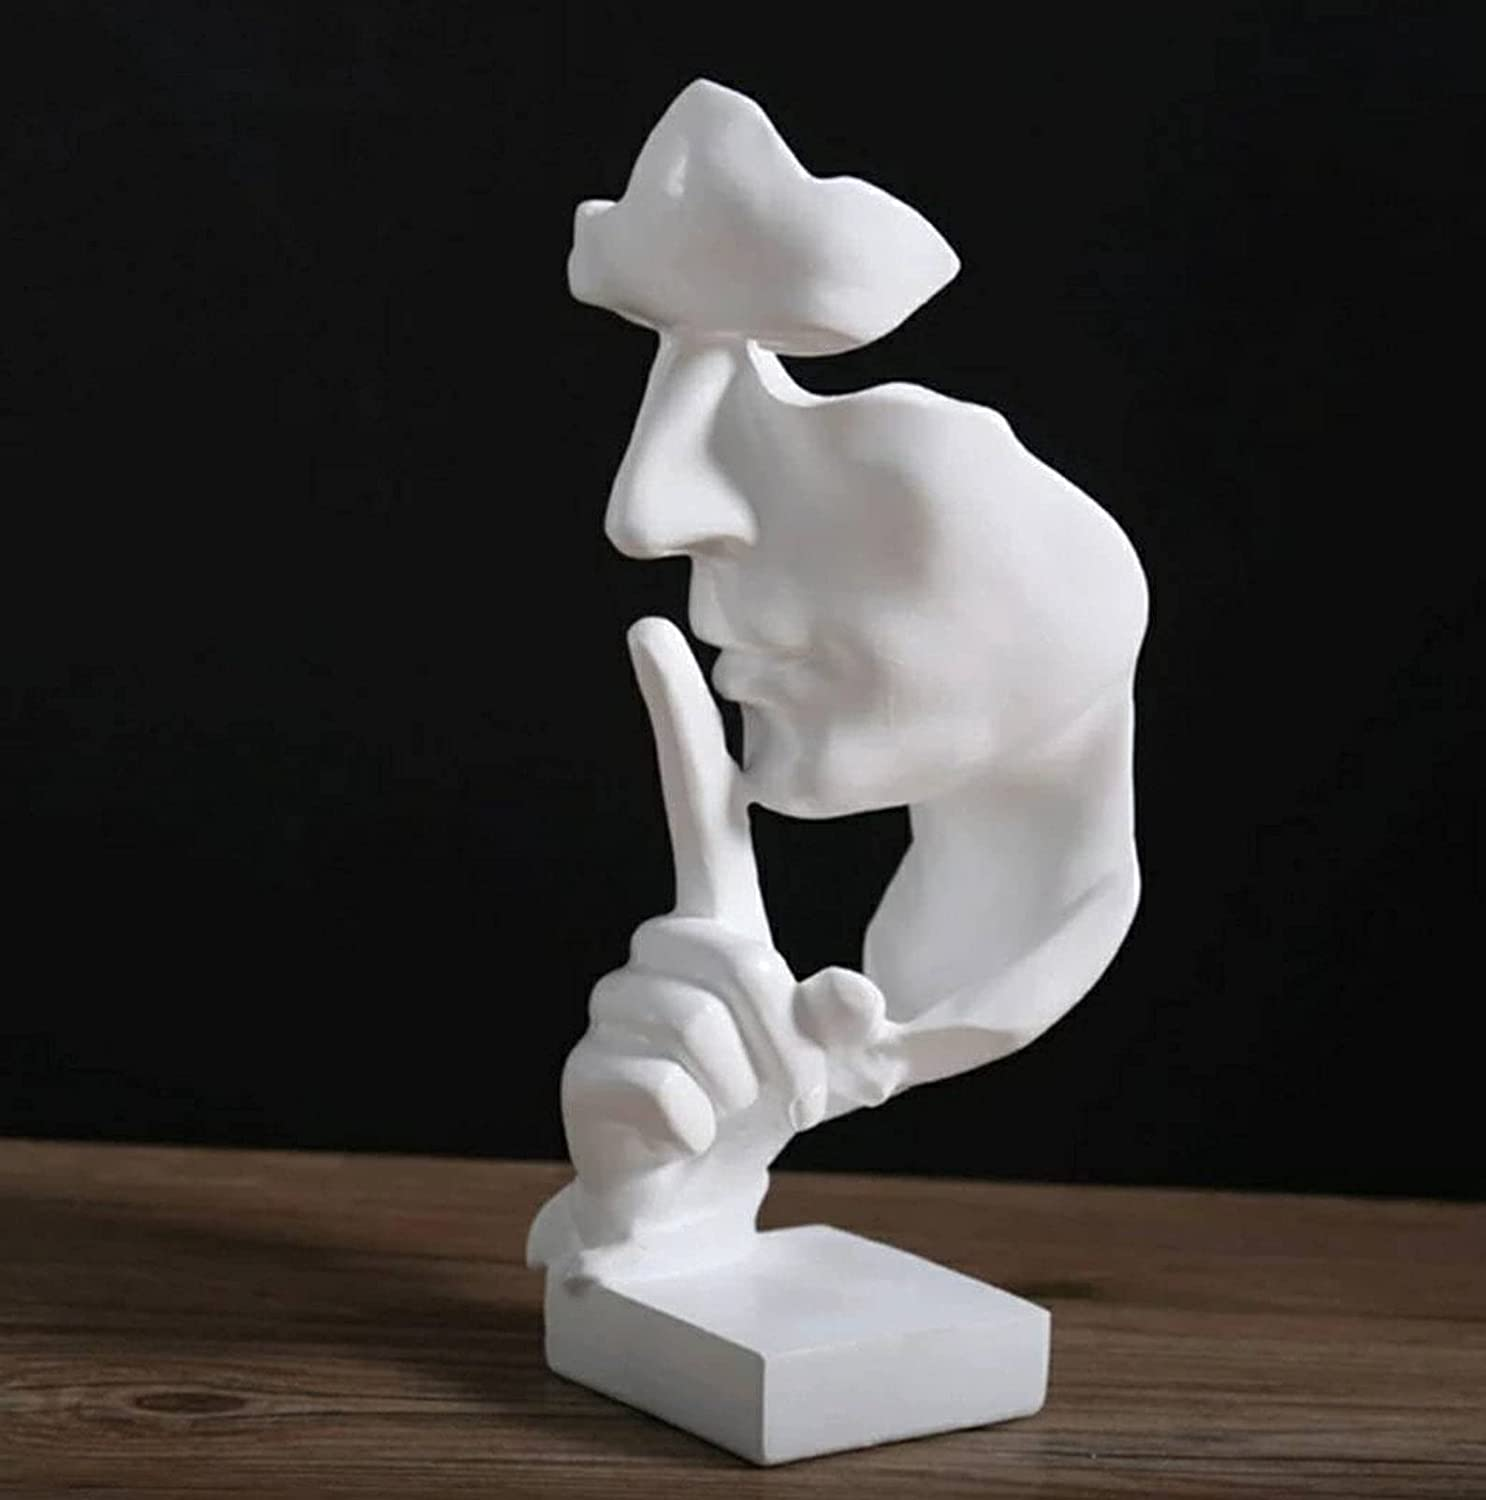 Silence is Golden Thinker Statue, Creative Abstract Figurine, Handcraft Resin Sculptures Decorative Objects for Entrance, Creative Room Home, Study, Piano, Modern Office Decor (White)